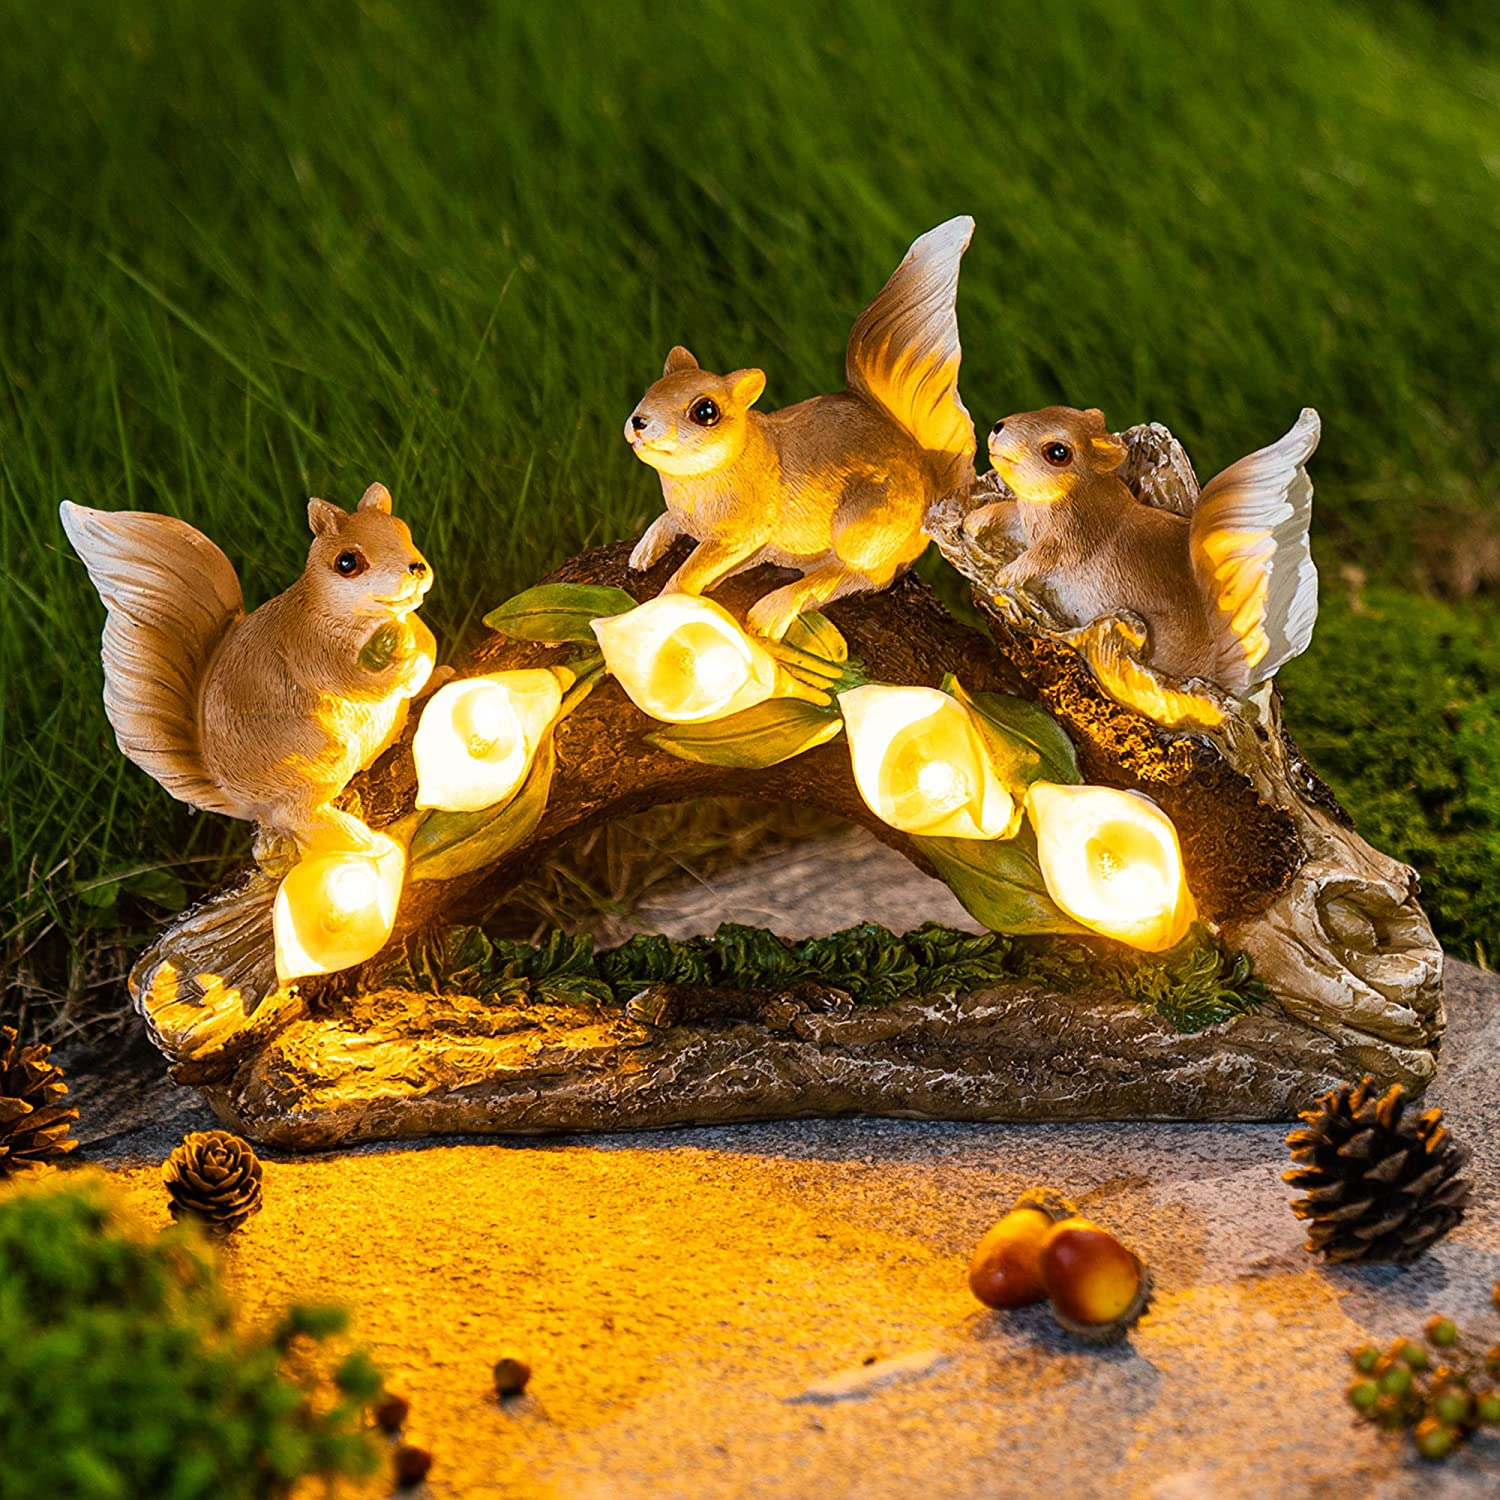 GIGALUMI Garden Squirrel Figurines Outdoor Decor, Garden Art Outdoor for Fall Winter Garden Decor, Outdoor Solar Statue with 5 LEDs for Patio, Lawn, Yard Art Decoration, Housewarming Garden Gift